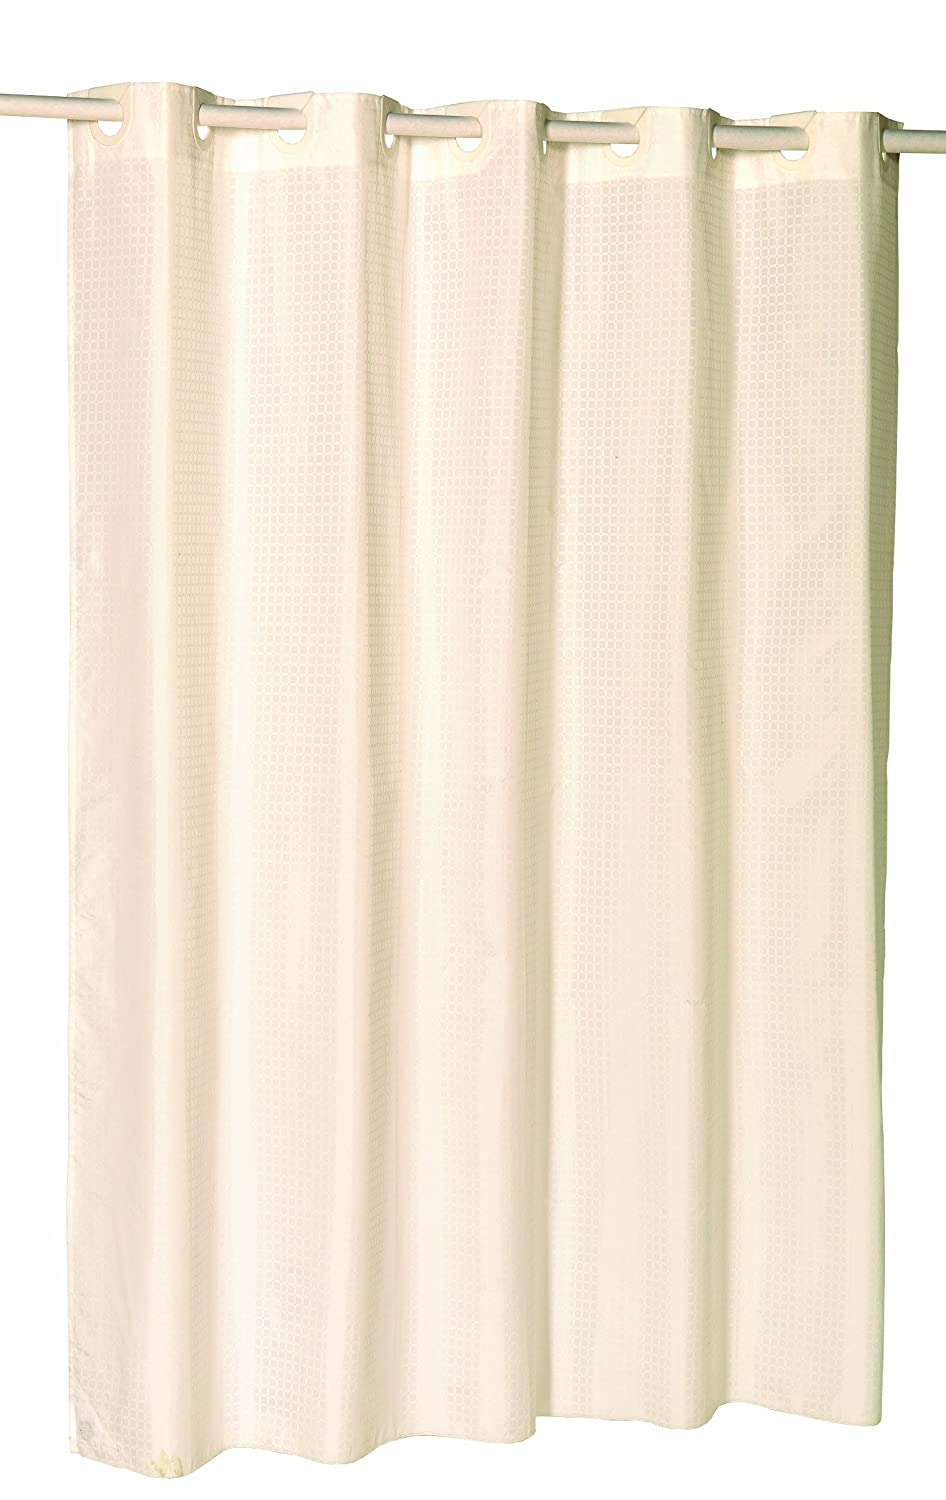 Carnation Home Fashions SCEZ-XL/CK/08 Ez On 180cm x 210cm Fabric Shower Curtain Cheques - Ivory